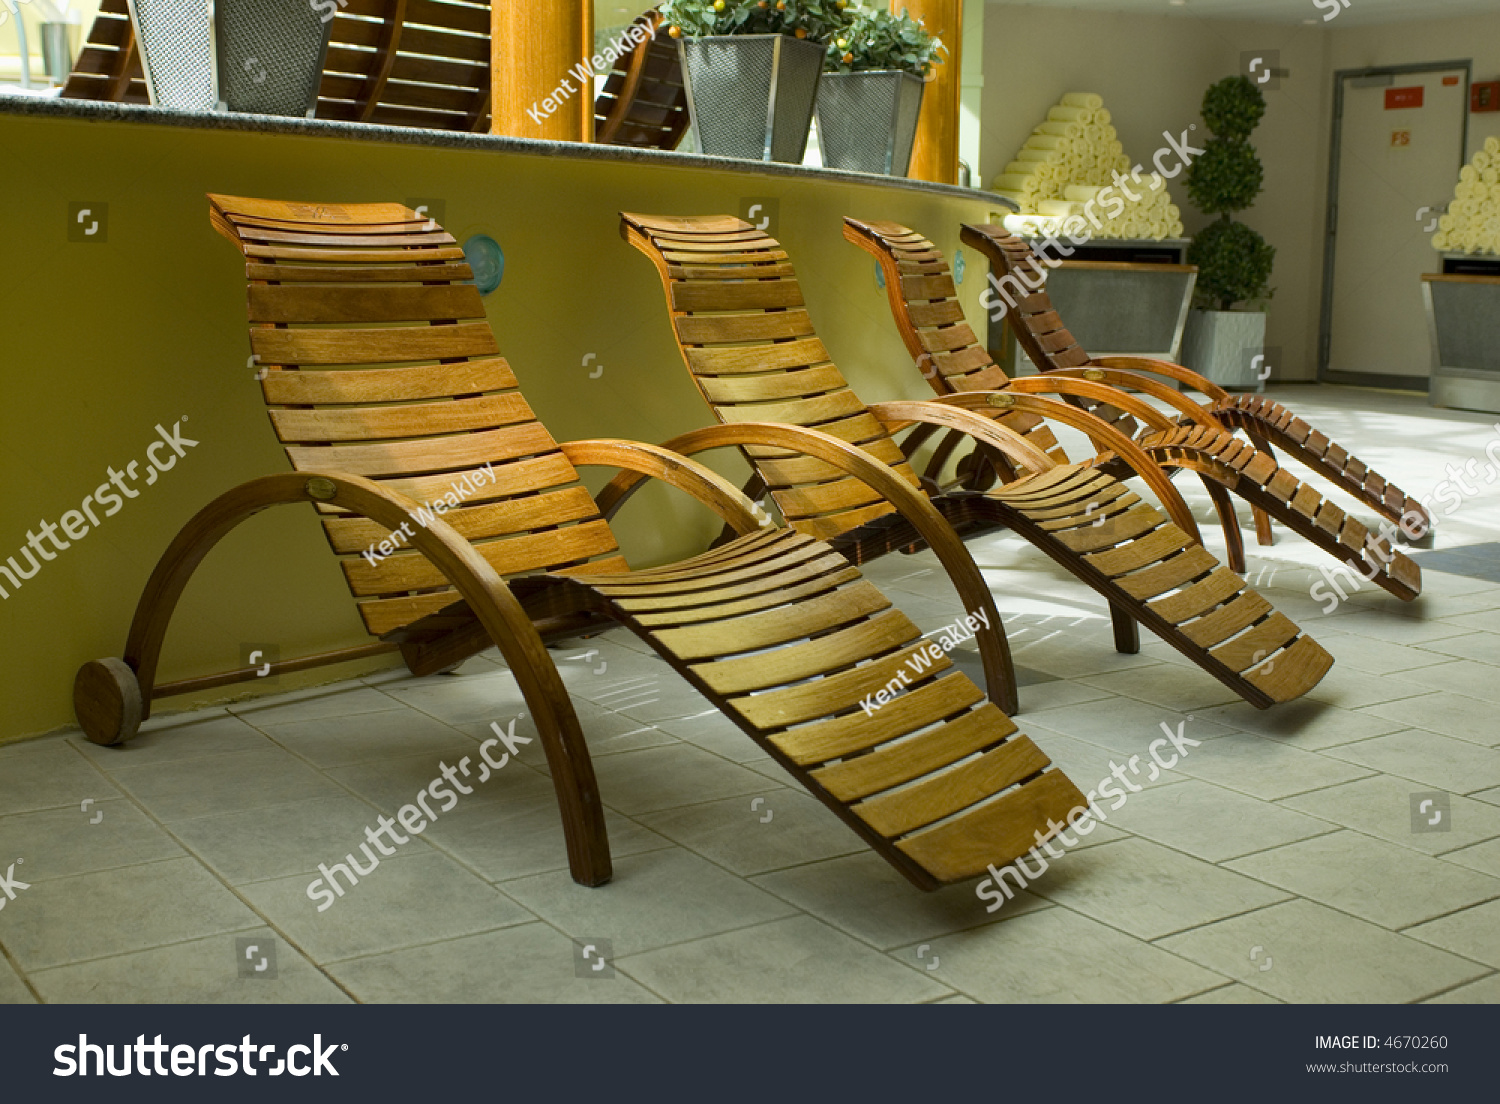 Spa lounge chair - Spa Resort Wood Lounge Chairs In Relaxing Environment